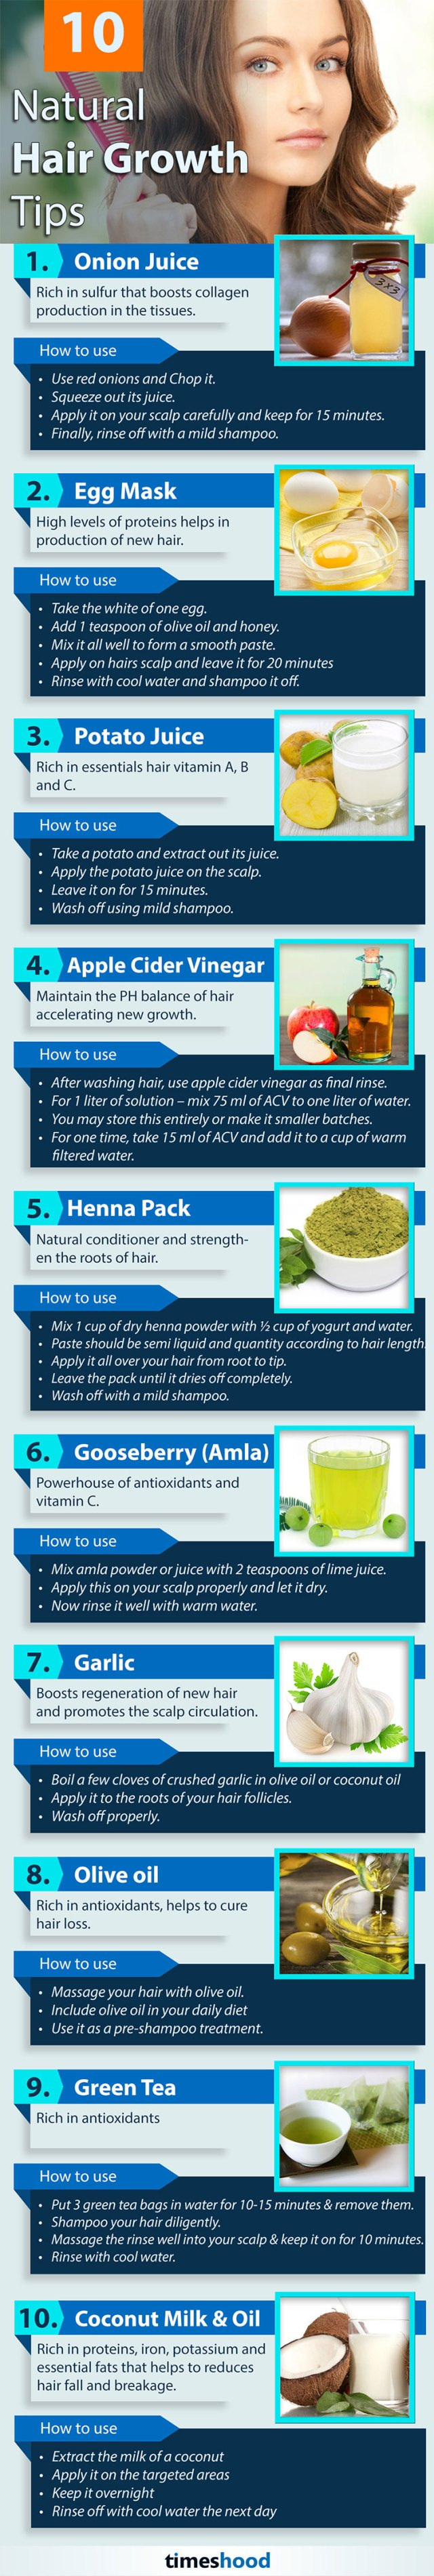 10 Natural Hair Growth Tips - Powerful Home Remedies